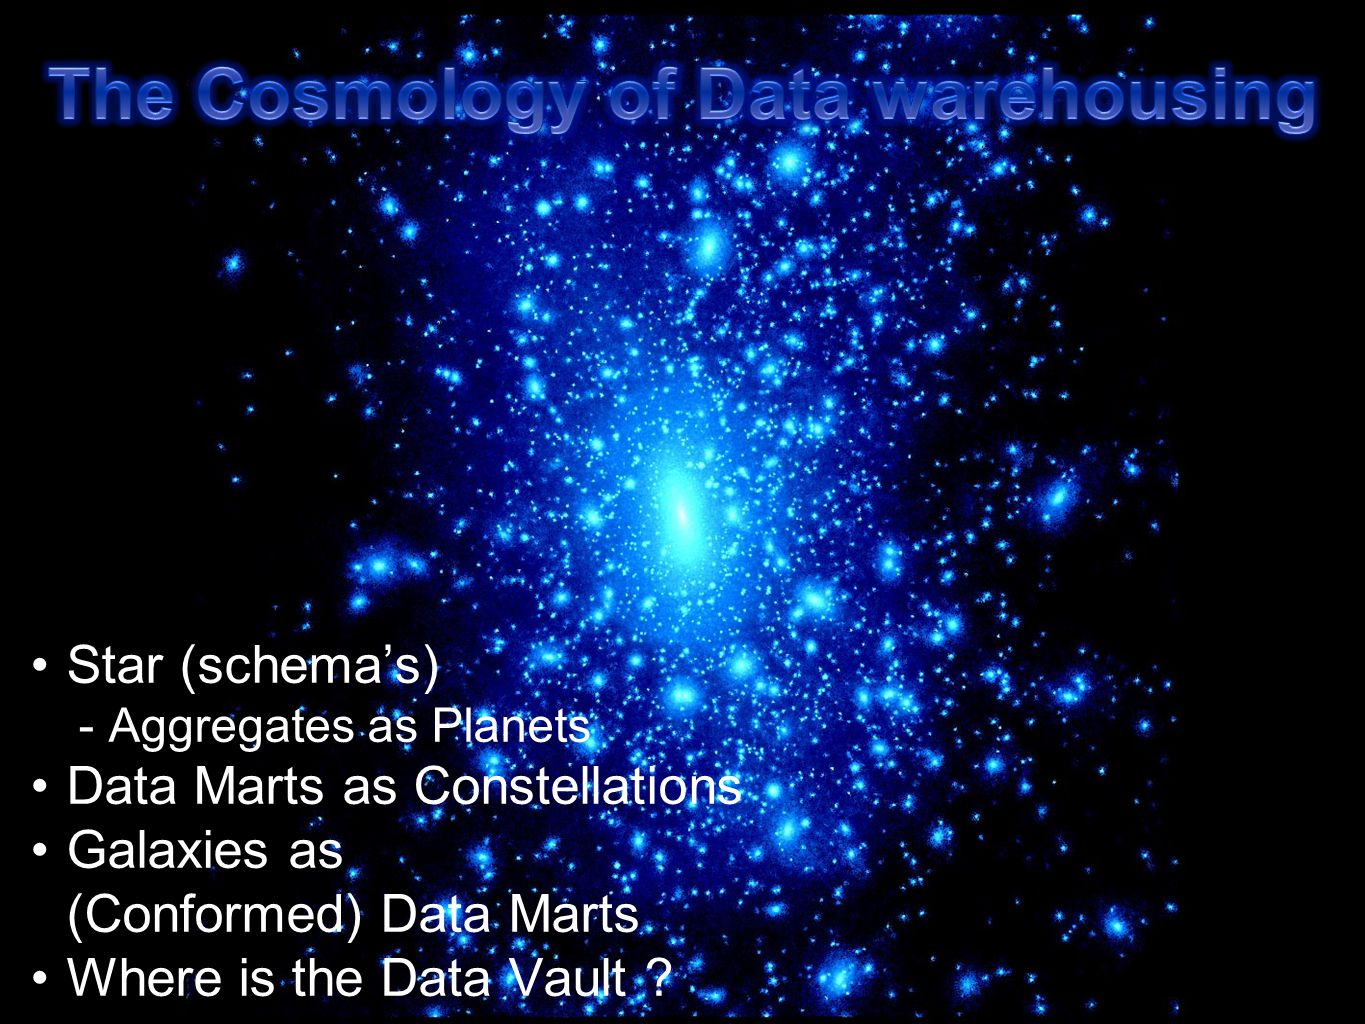 The Cosmology of Data warehousing